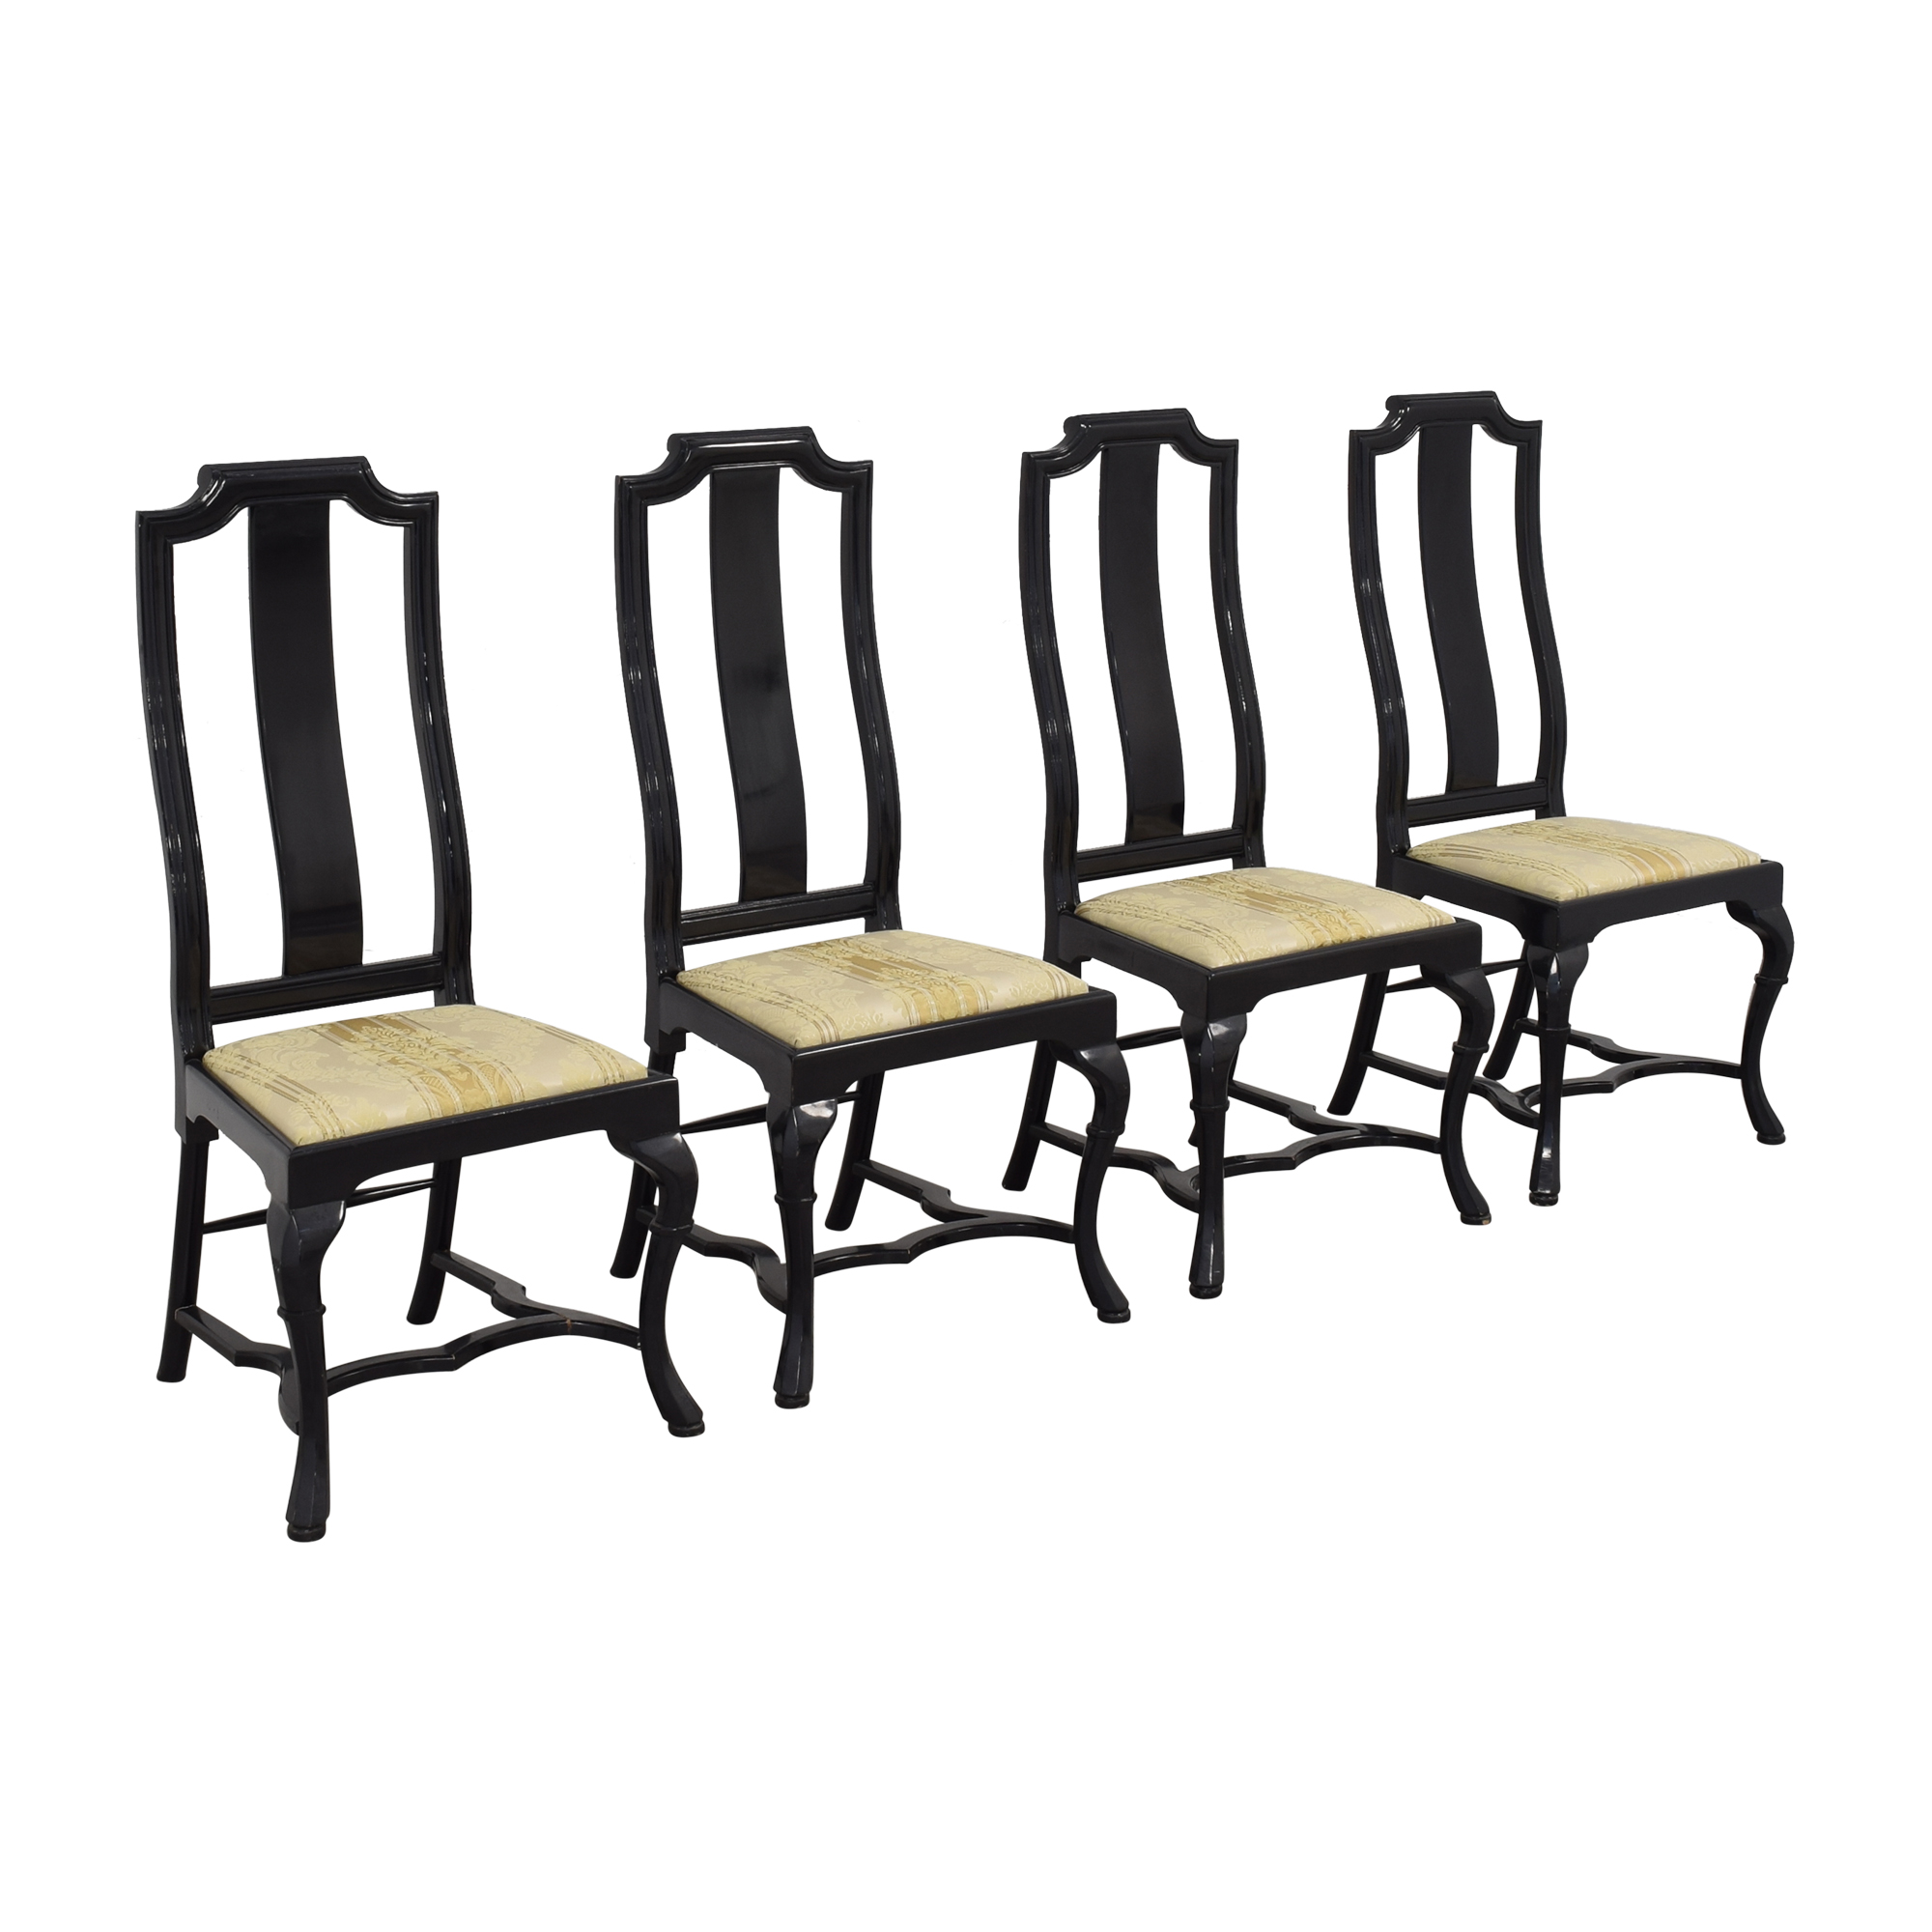 Upholstered Dining Chairs black and tan